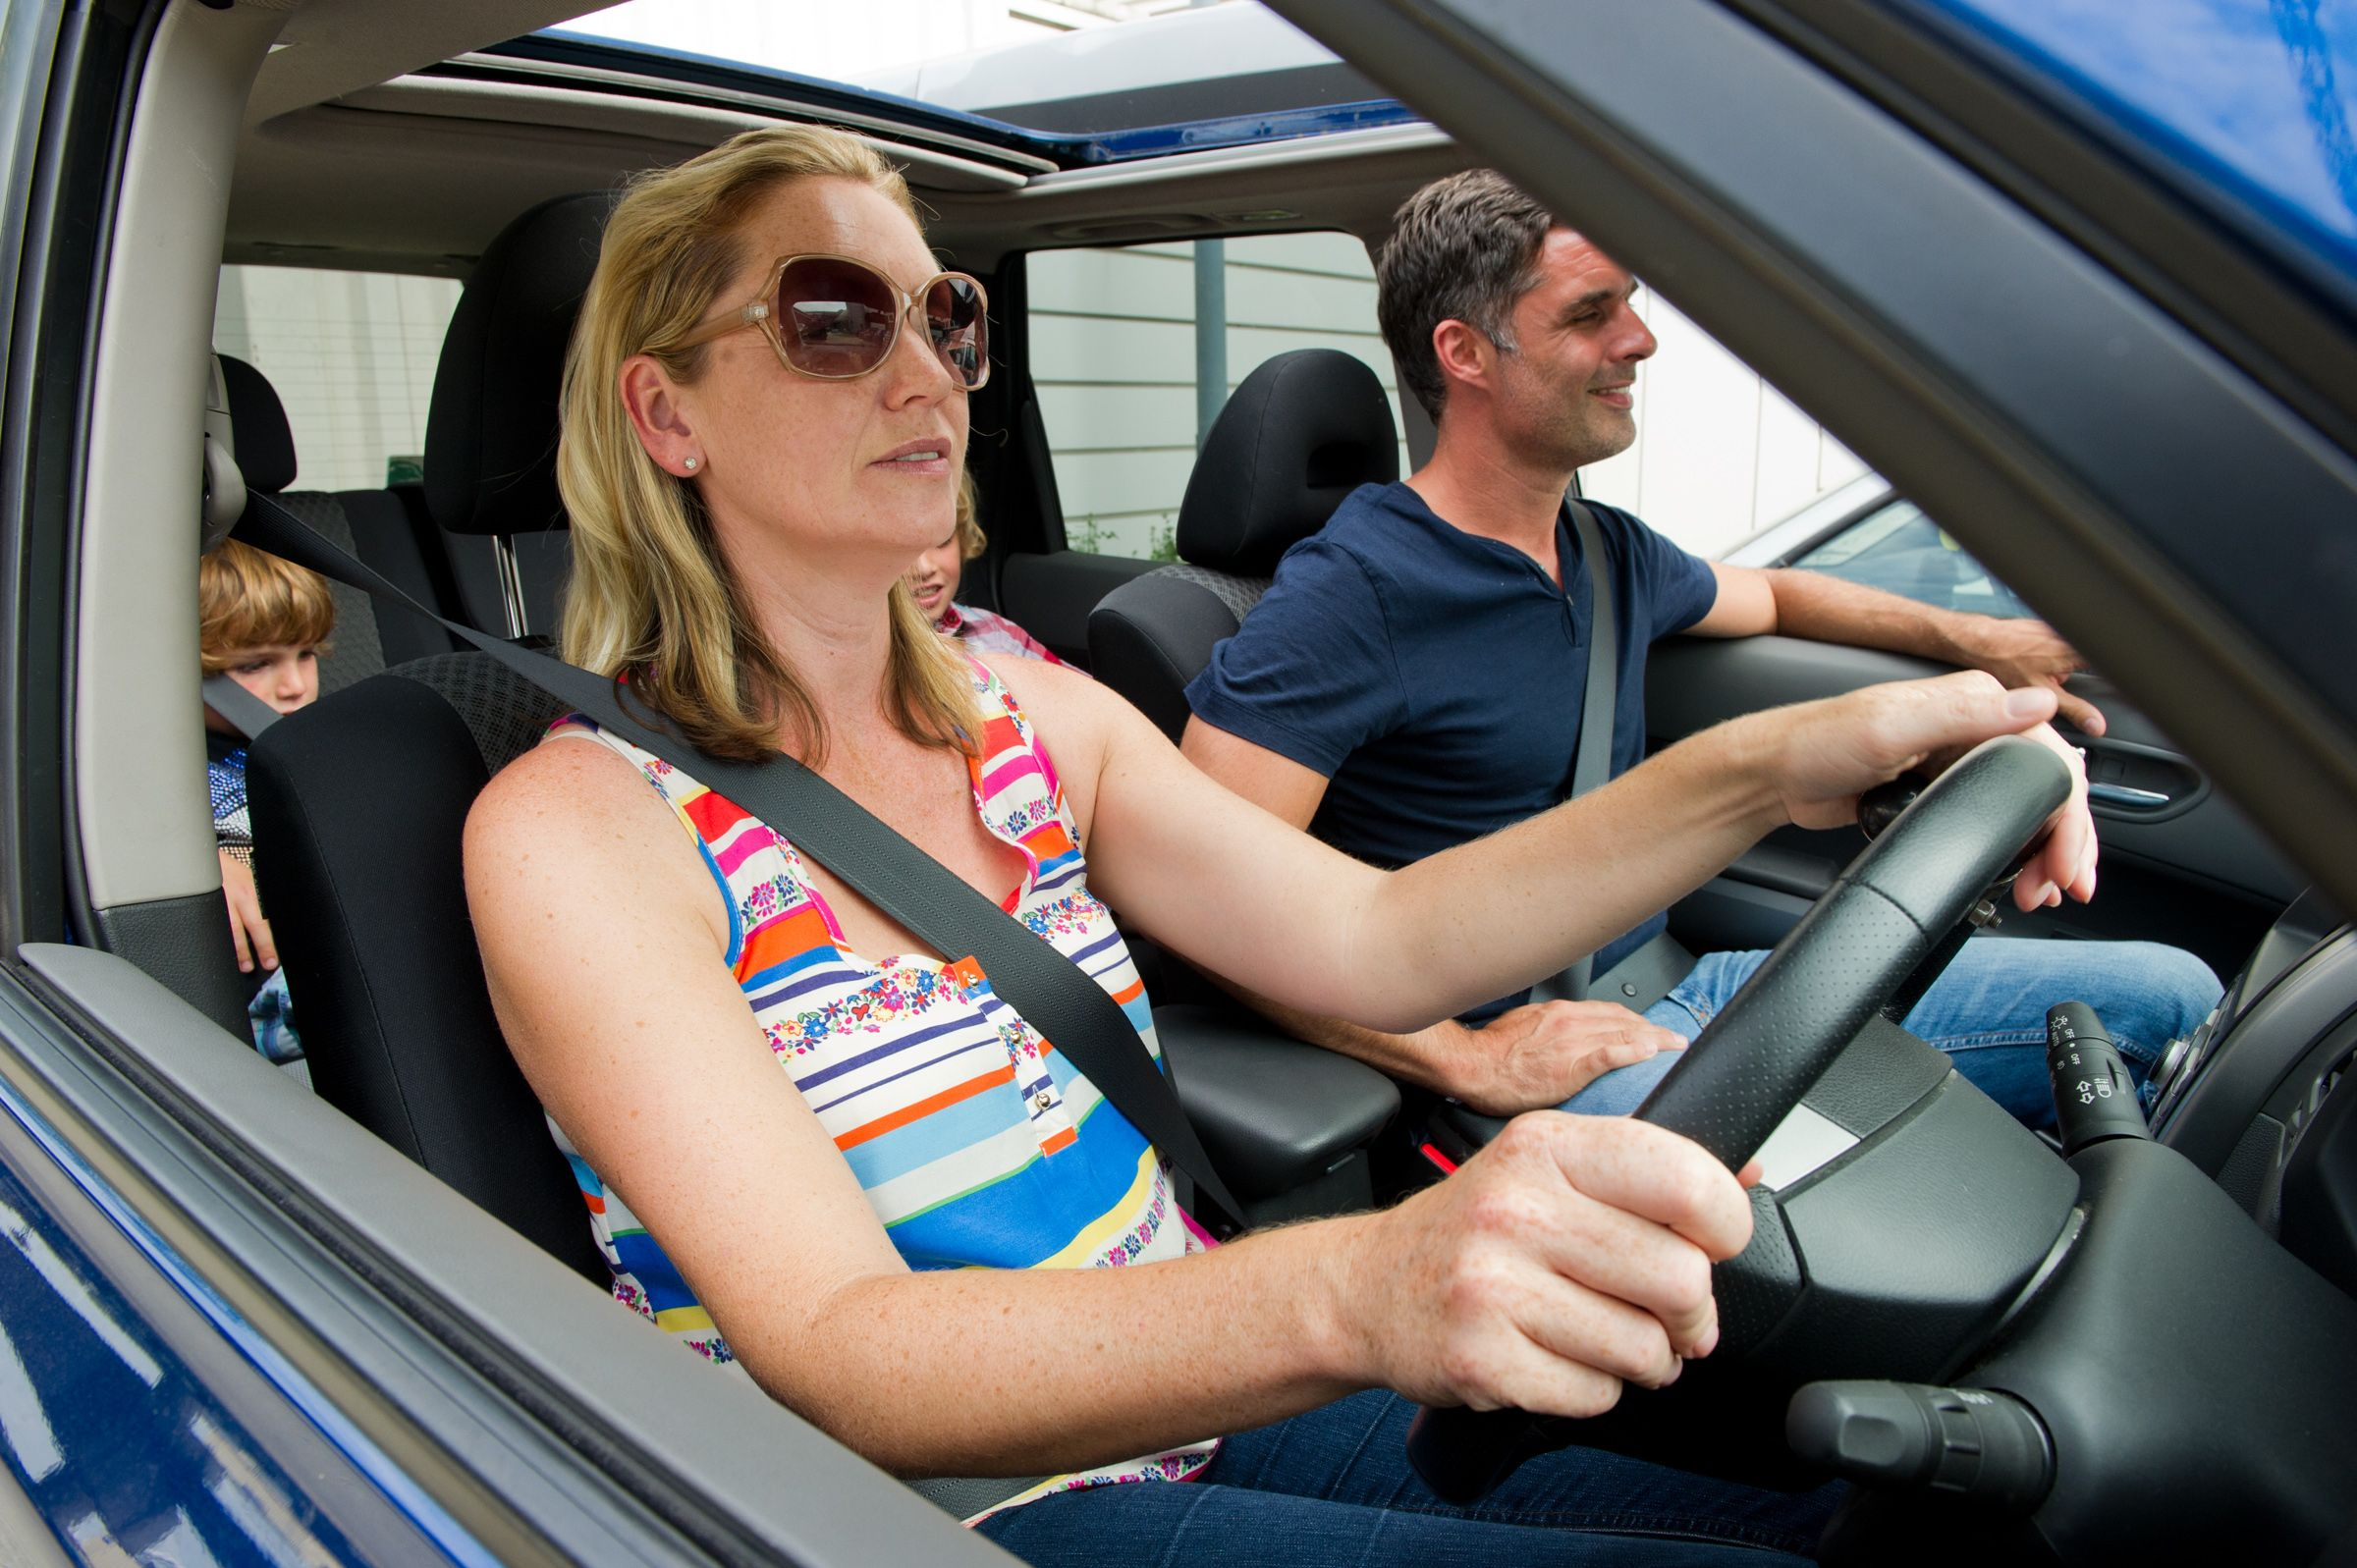 Family In A Car Driving Google Search Compare Car Insurance